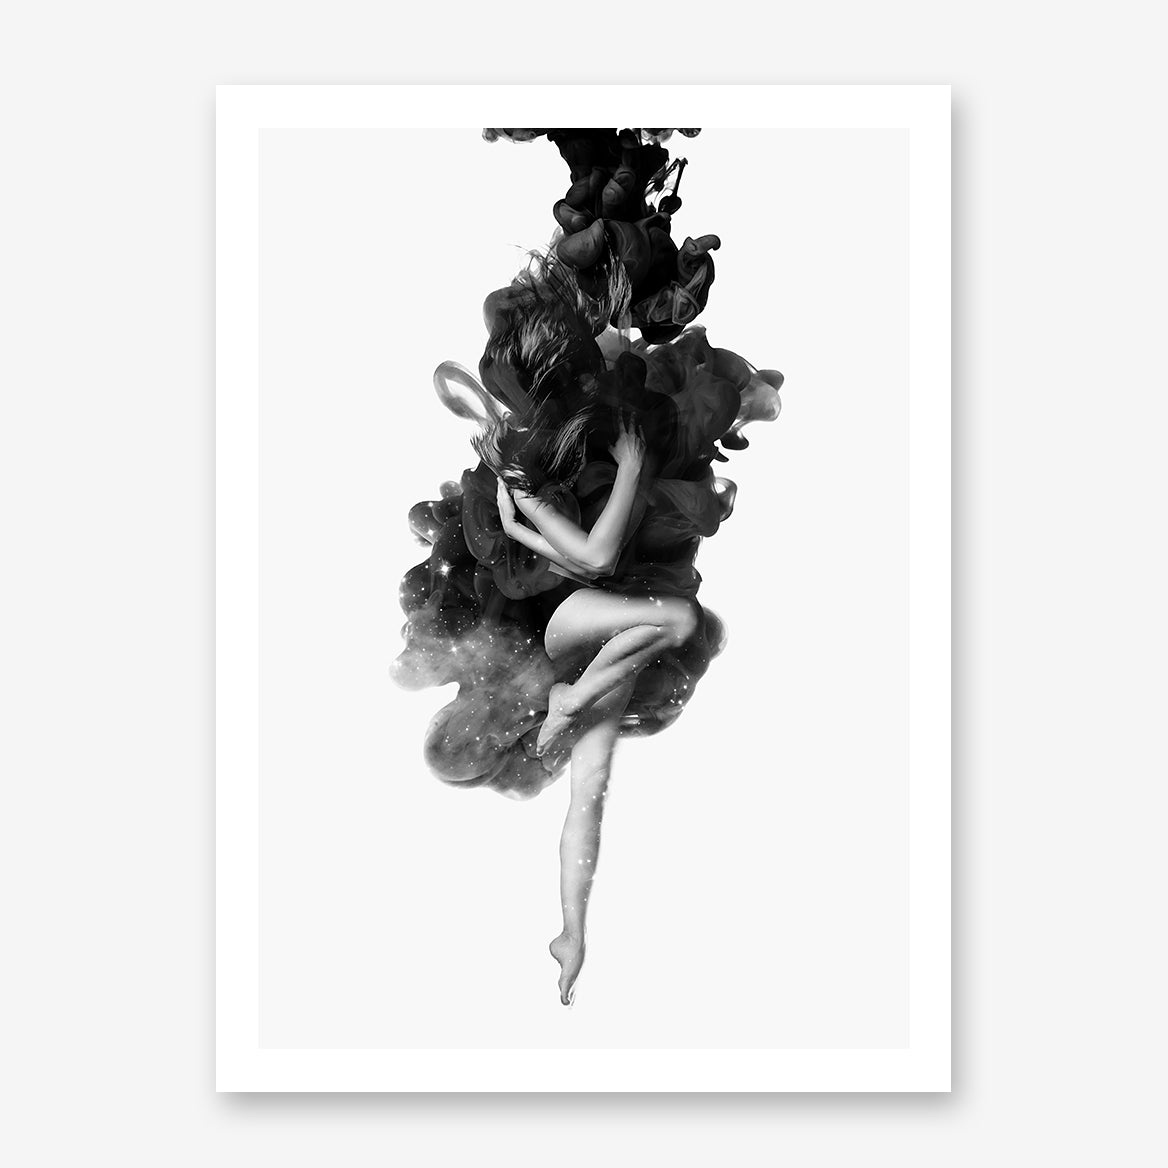 Black and grey poster print by Robert Farkas, with a woman embracing the smoke.